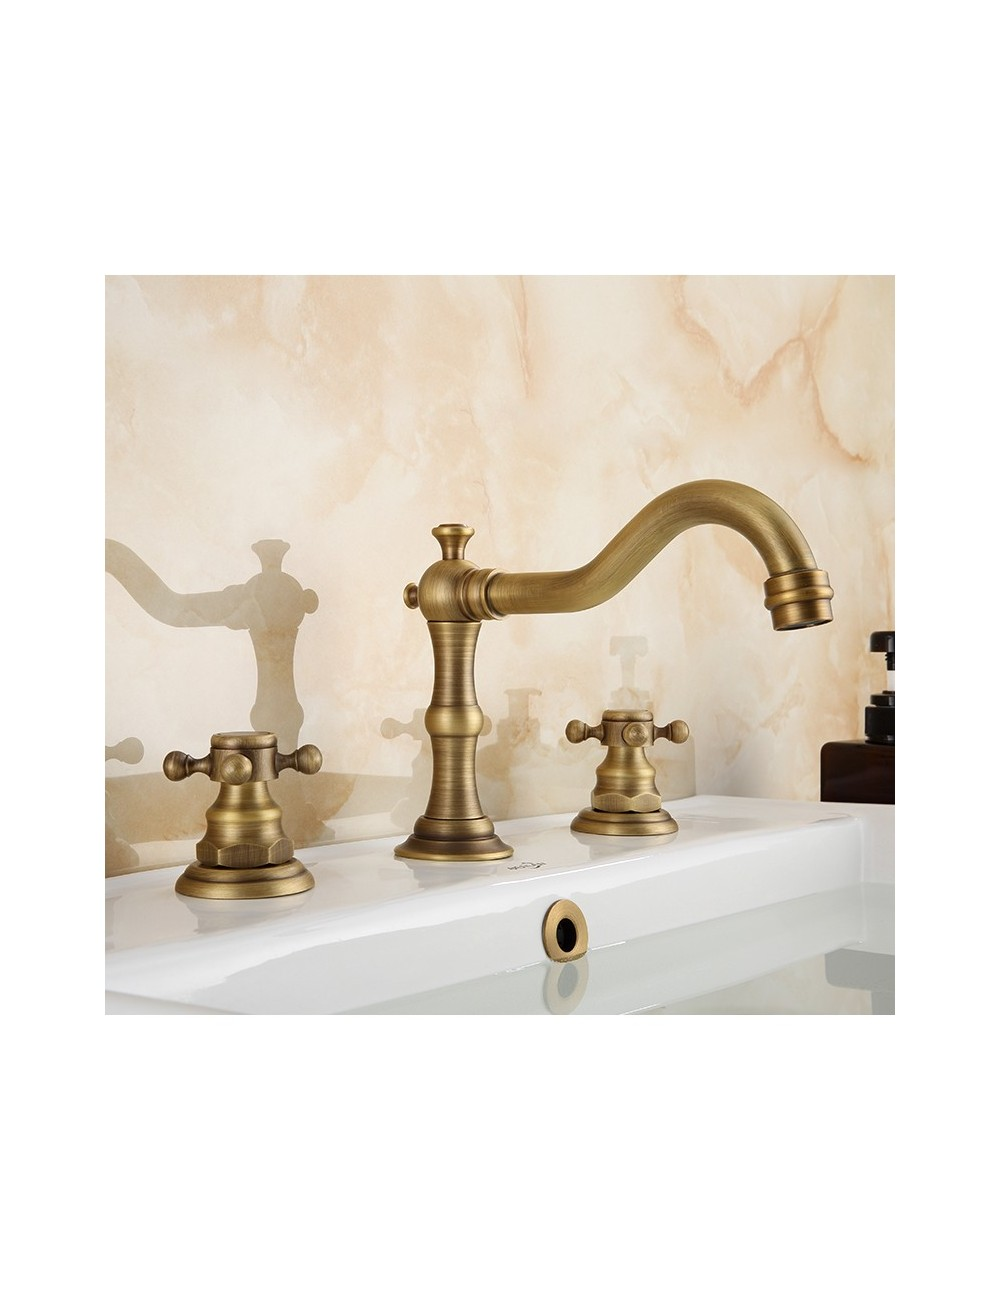 Ugo, Melangeur Lavabo 3 trous finition bronze